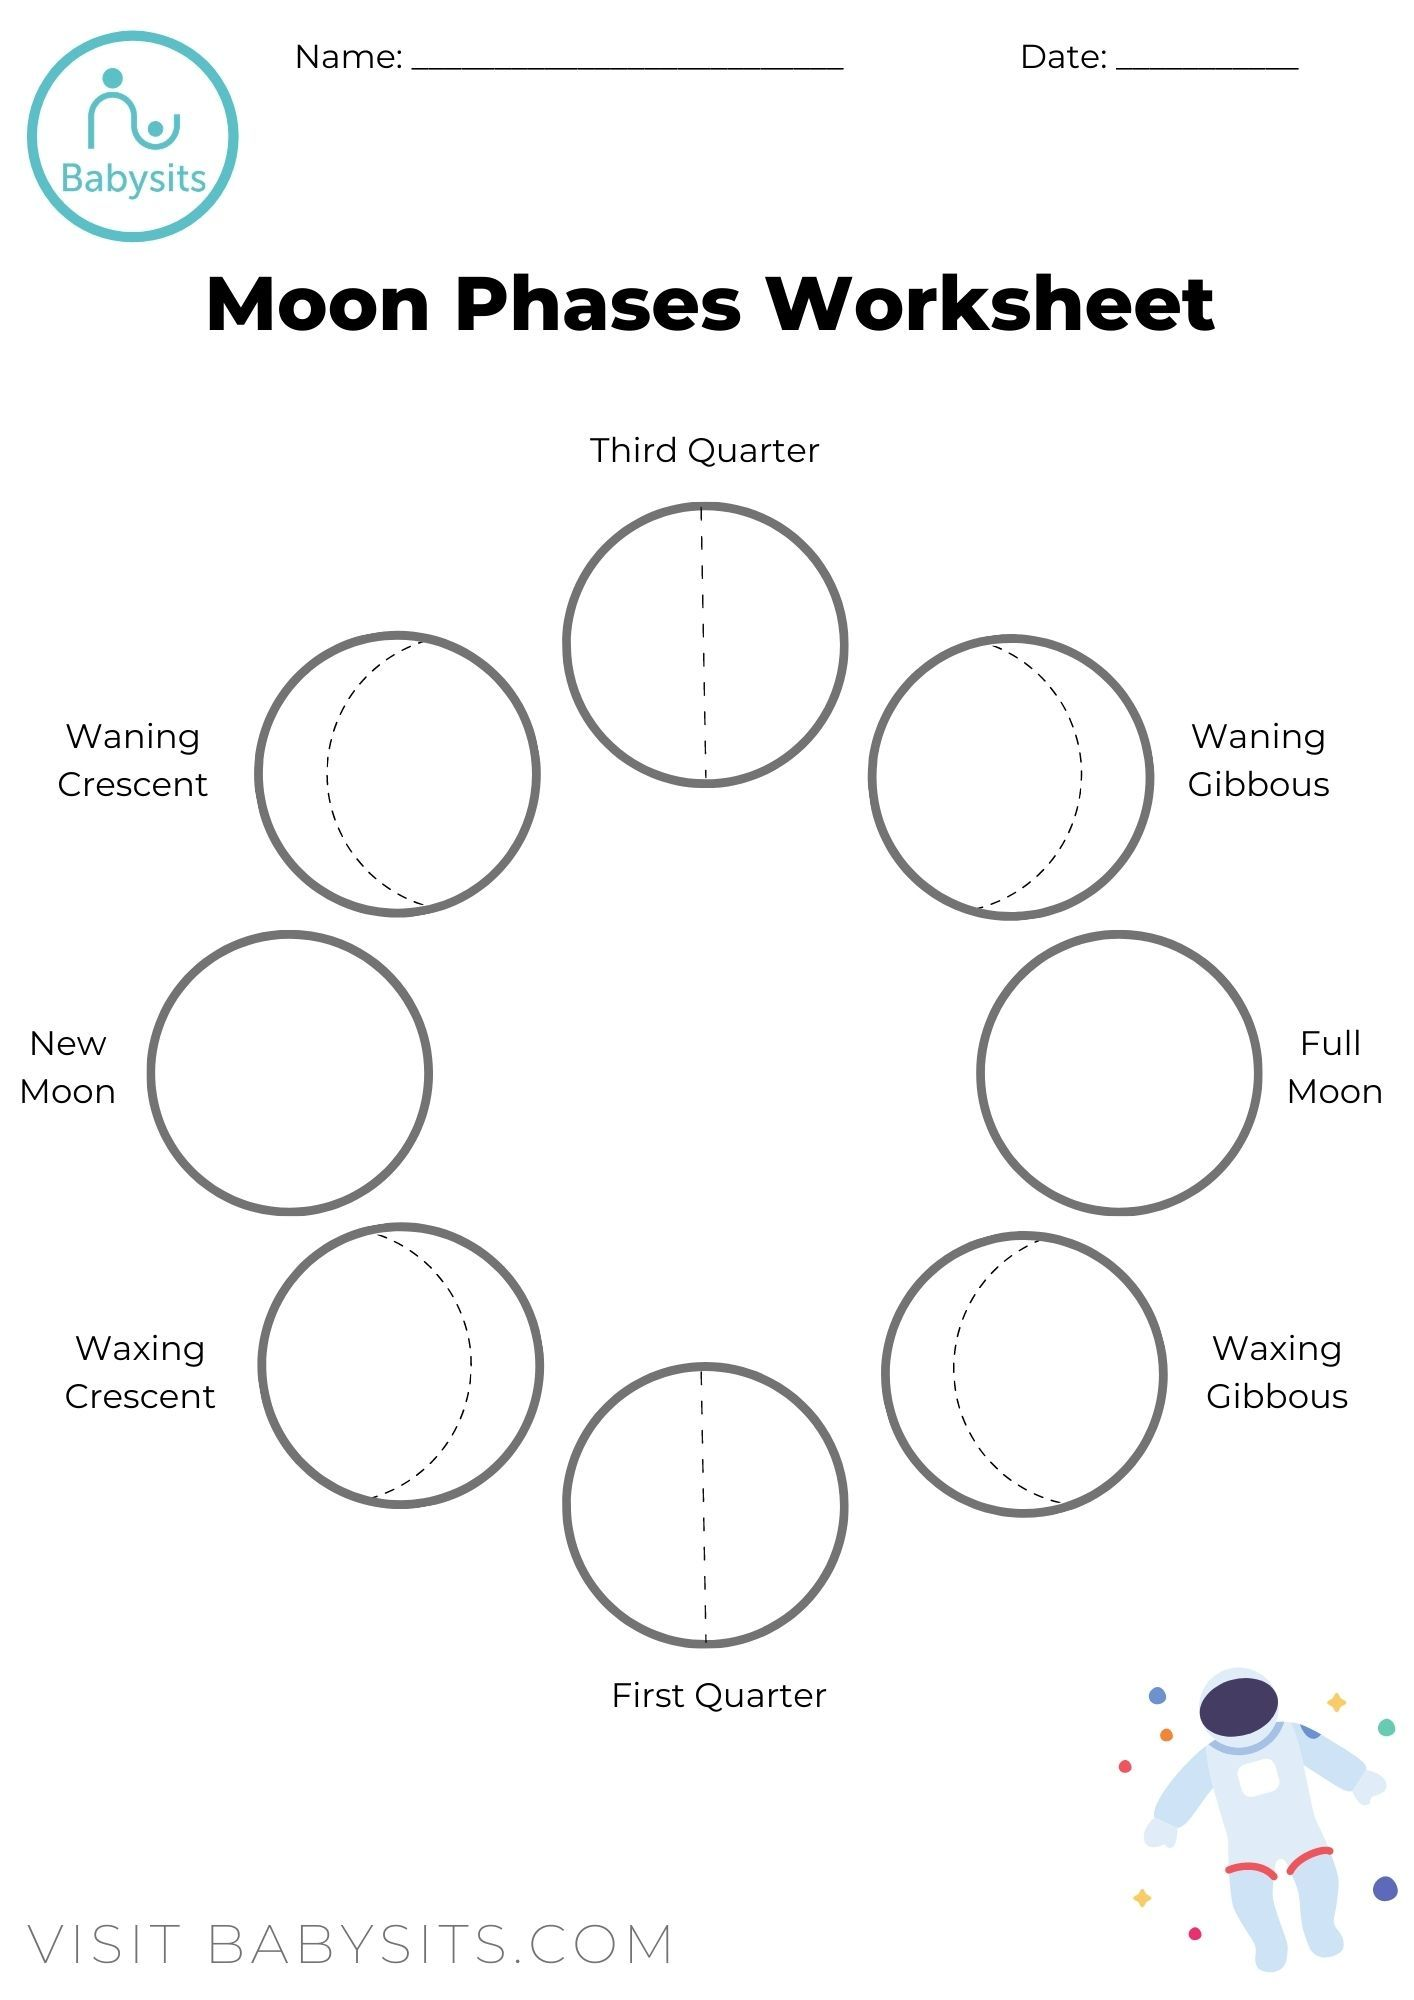 Moon Phases Worksheet Moon For Kids Moon Phases Space Crafts For Kids [ 2000 x 1414 Pixel ]